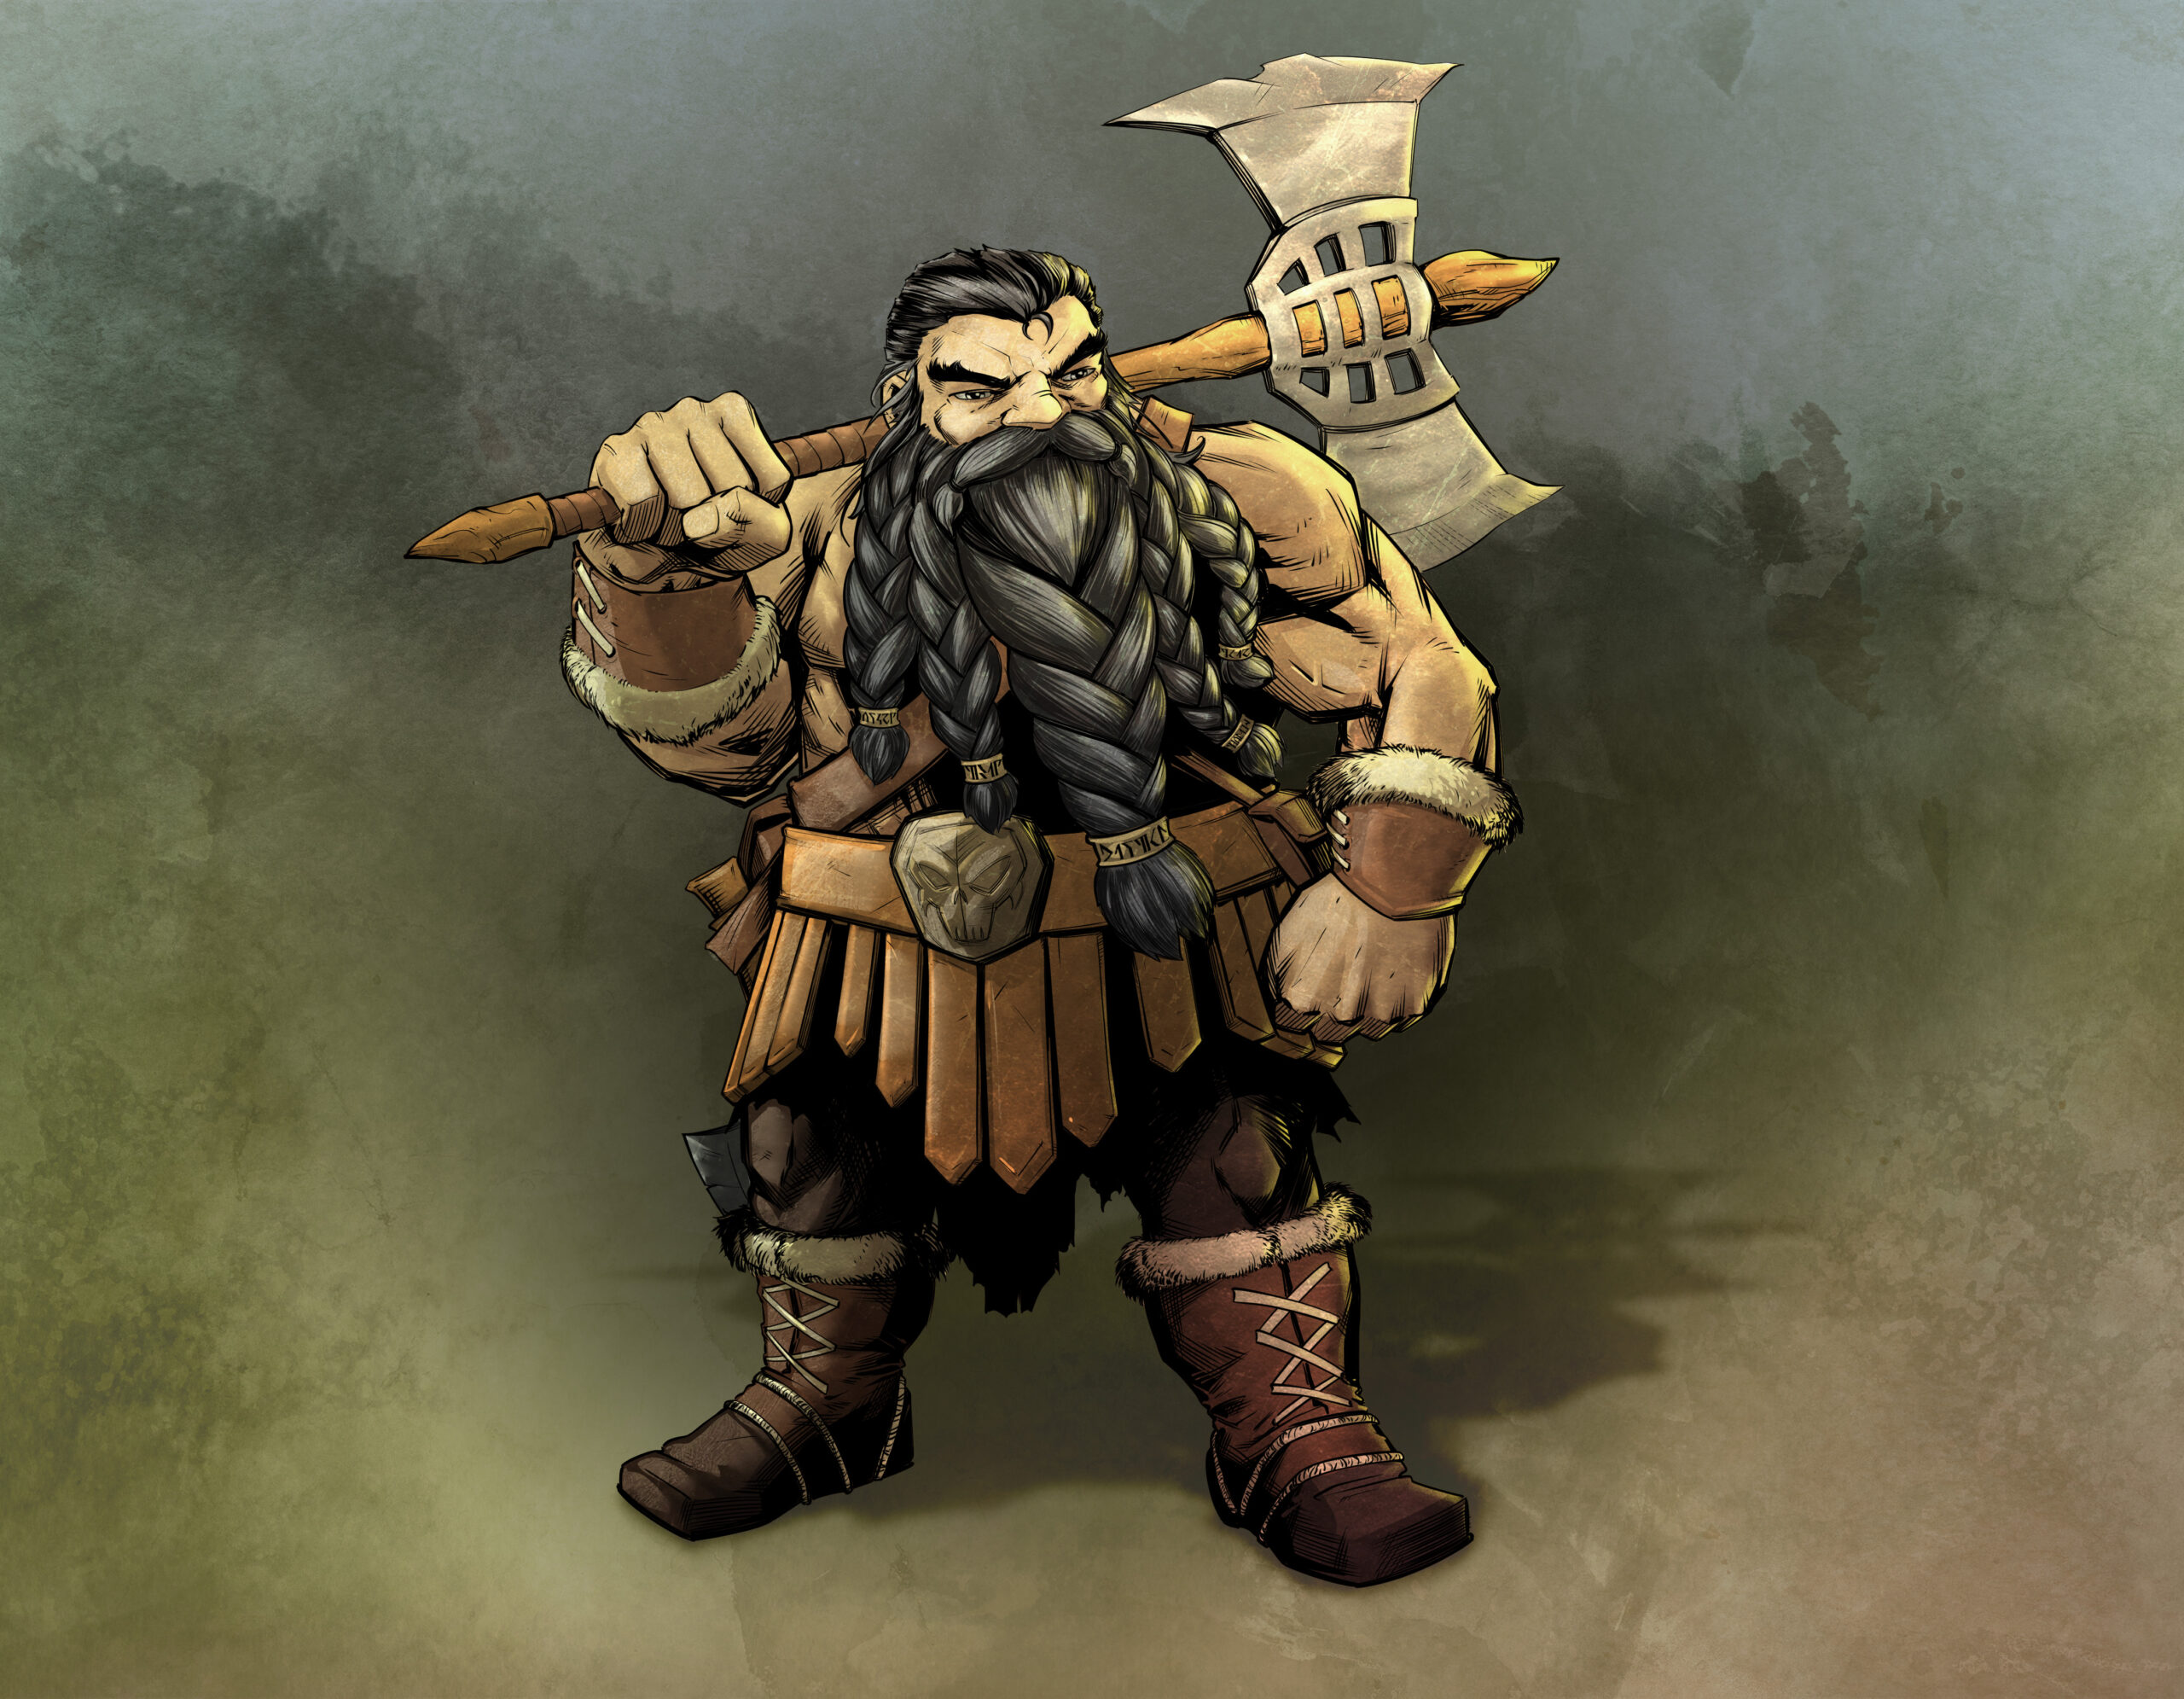 Balgruf the Barbarian Dwarf